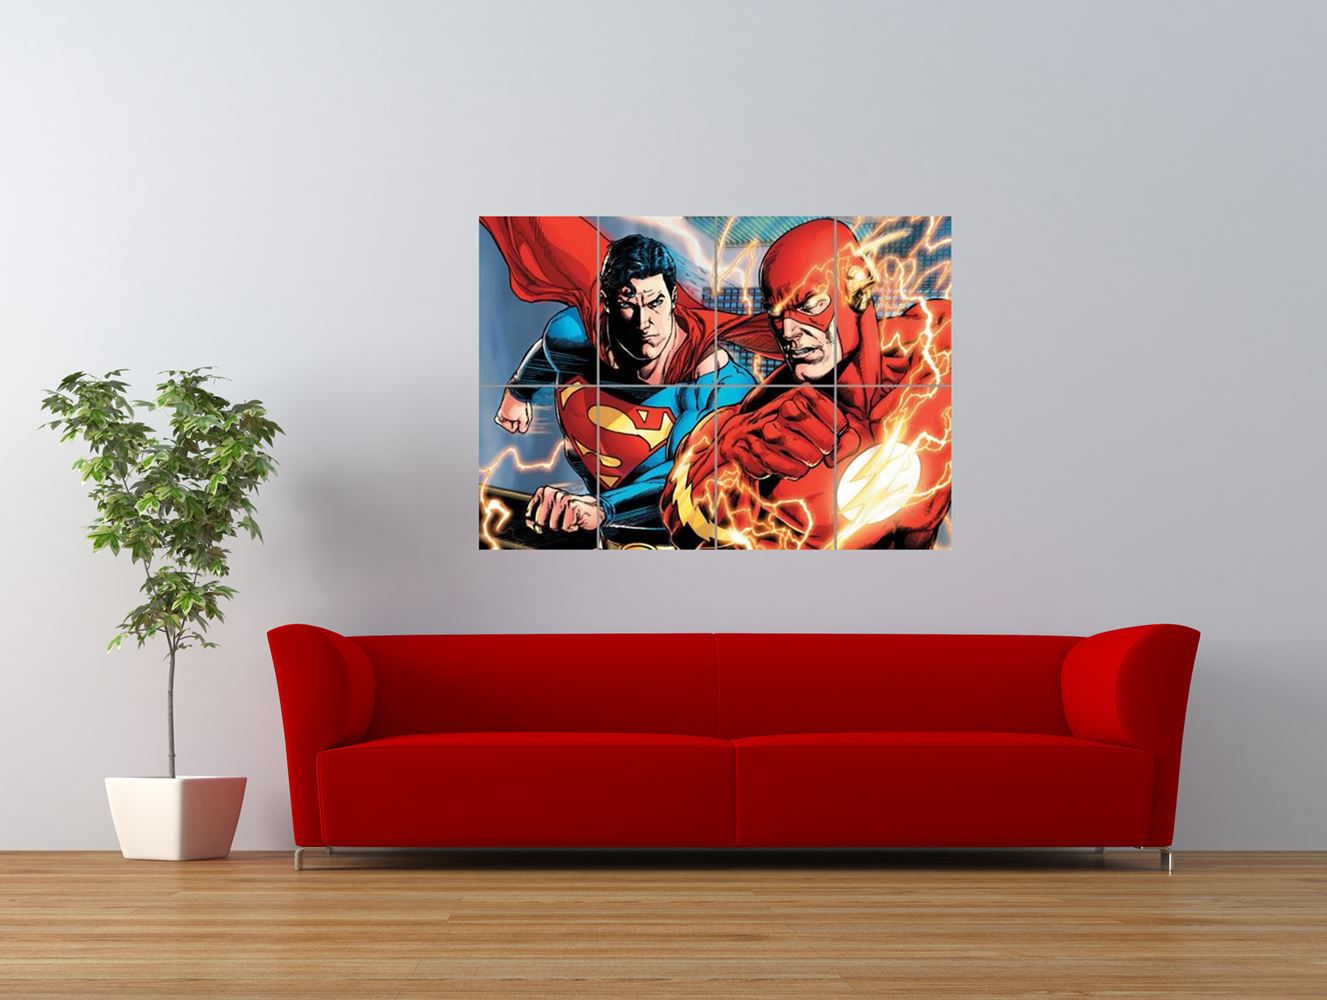 the flash vs superman comic cartoon fight giant art print panel poster nor0022 ebay. Black Bedroom Furniture Sets. Home Design Ideas